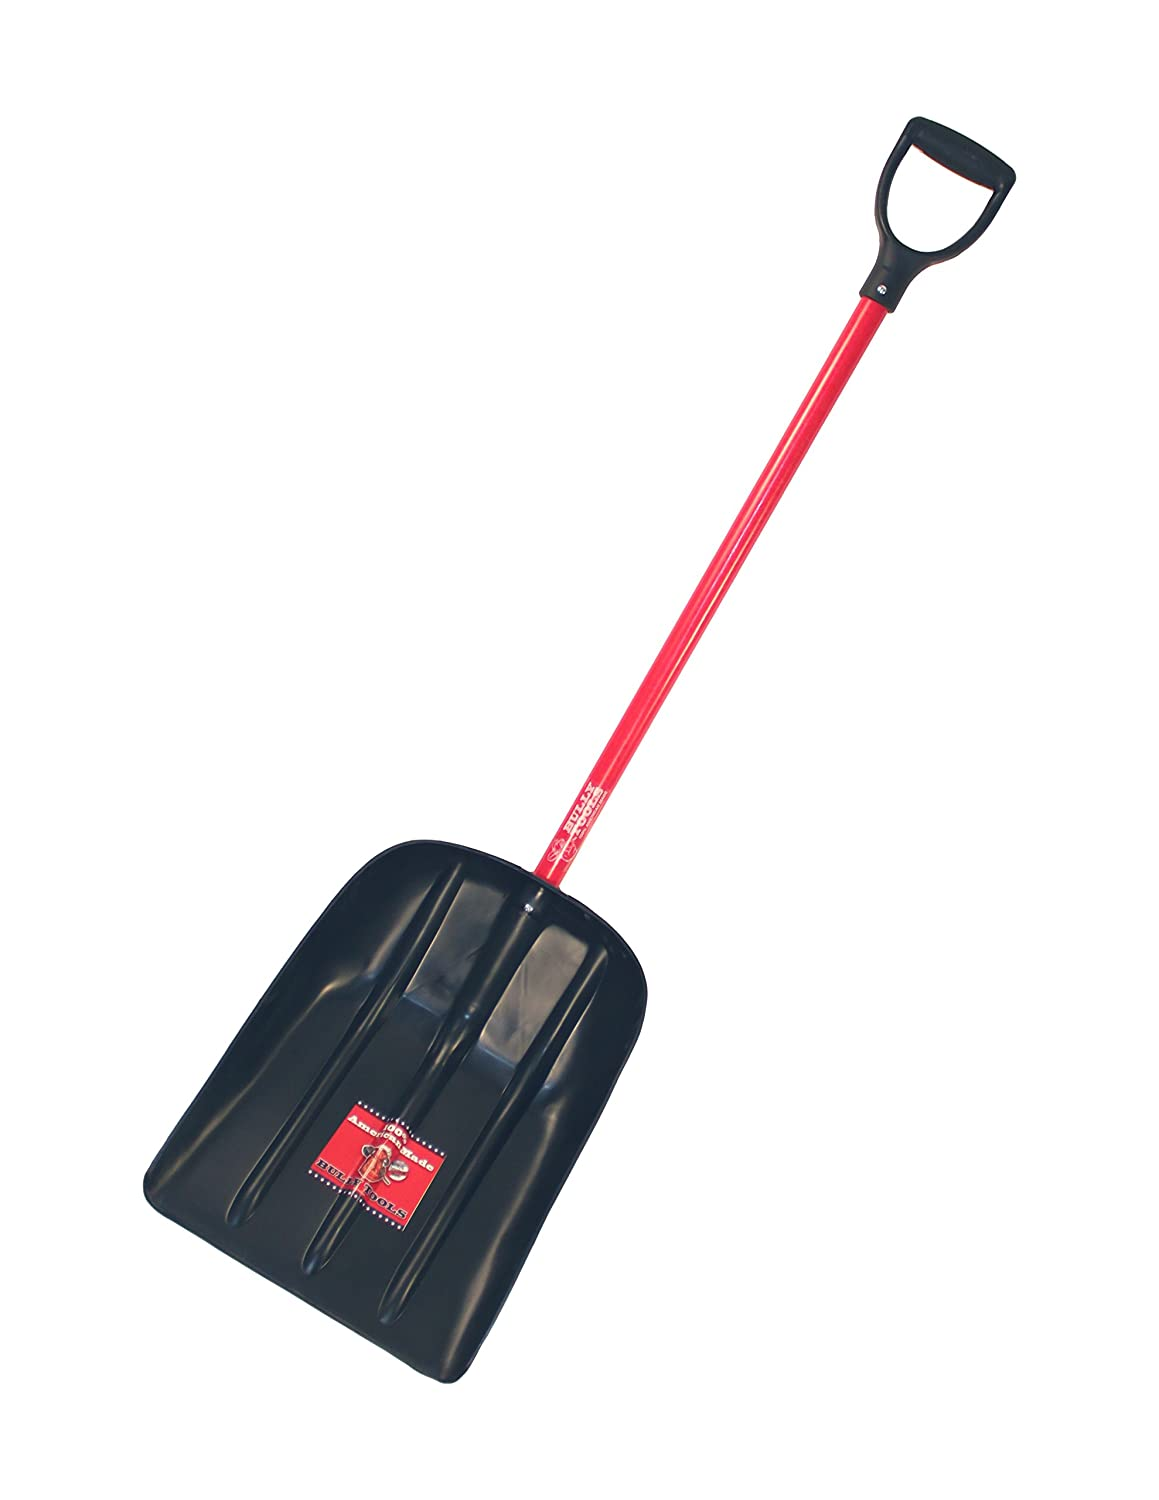 Bully Tools 92400 Mulch/Snow Scoop with Fiberglass D-grip Handle forest hill shovel